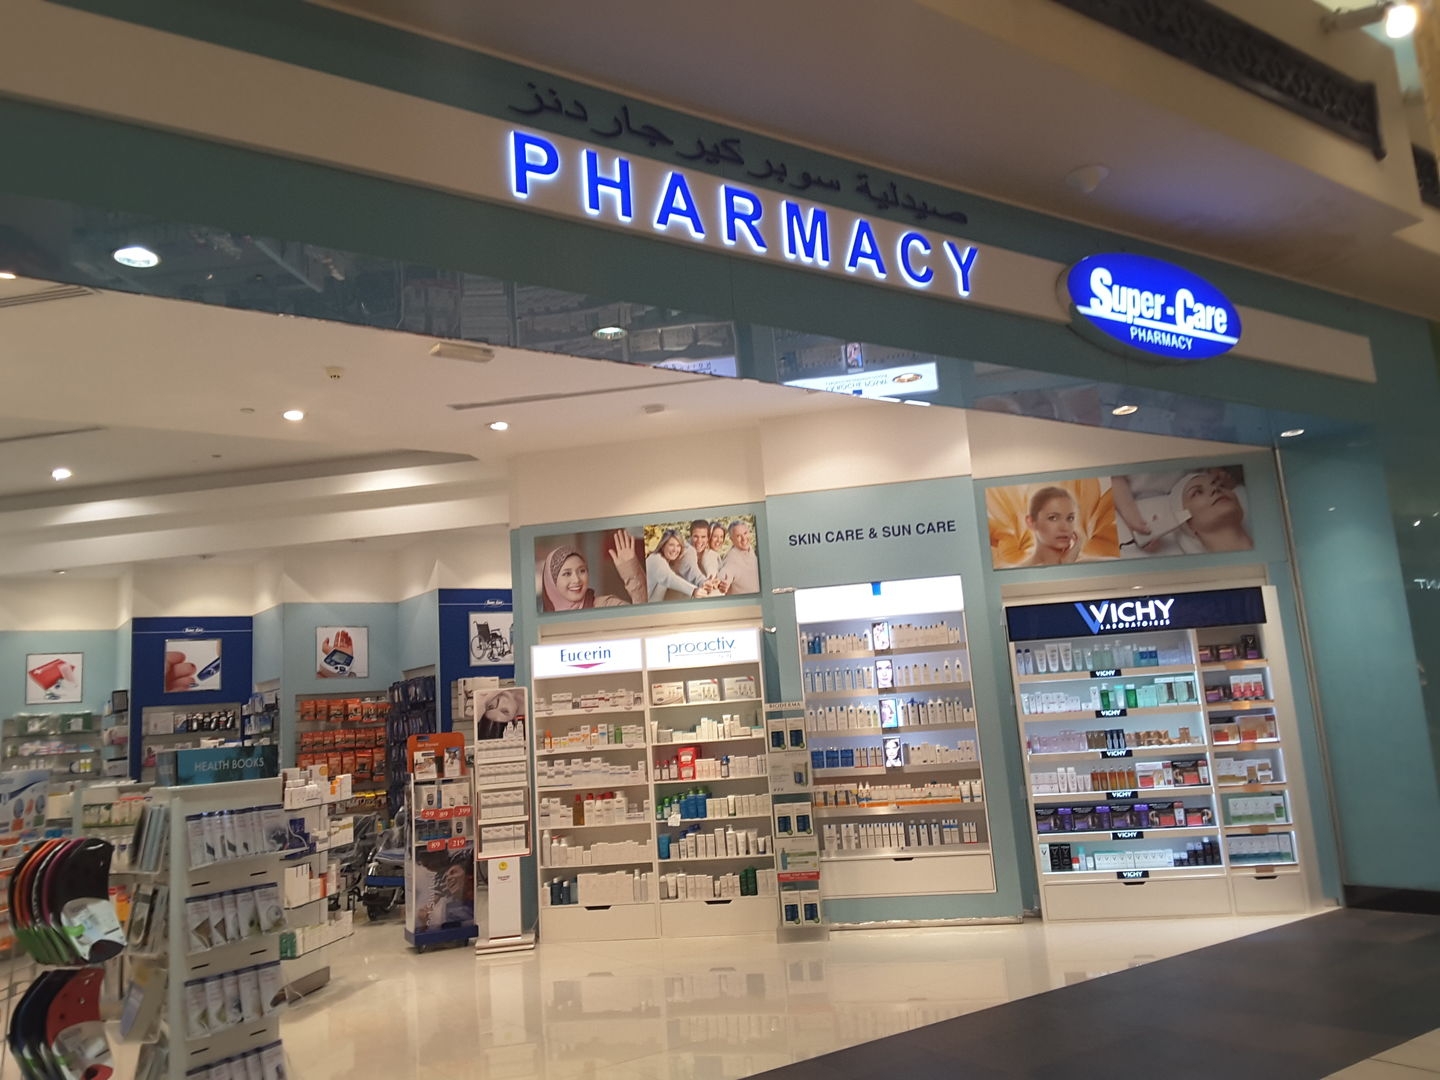 HiDubai-business-super-care-pharmacy-ibn-batuta-jebel-ali-1-dubai-1